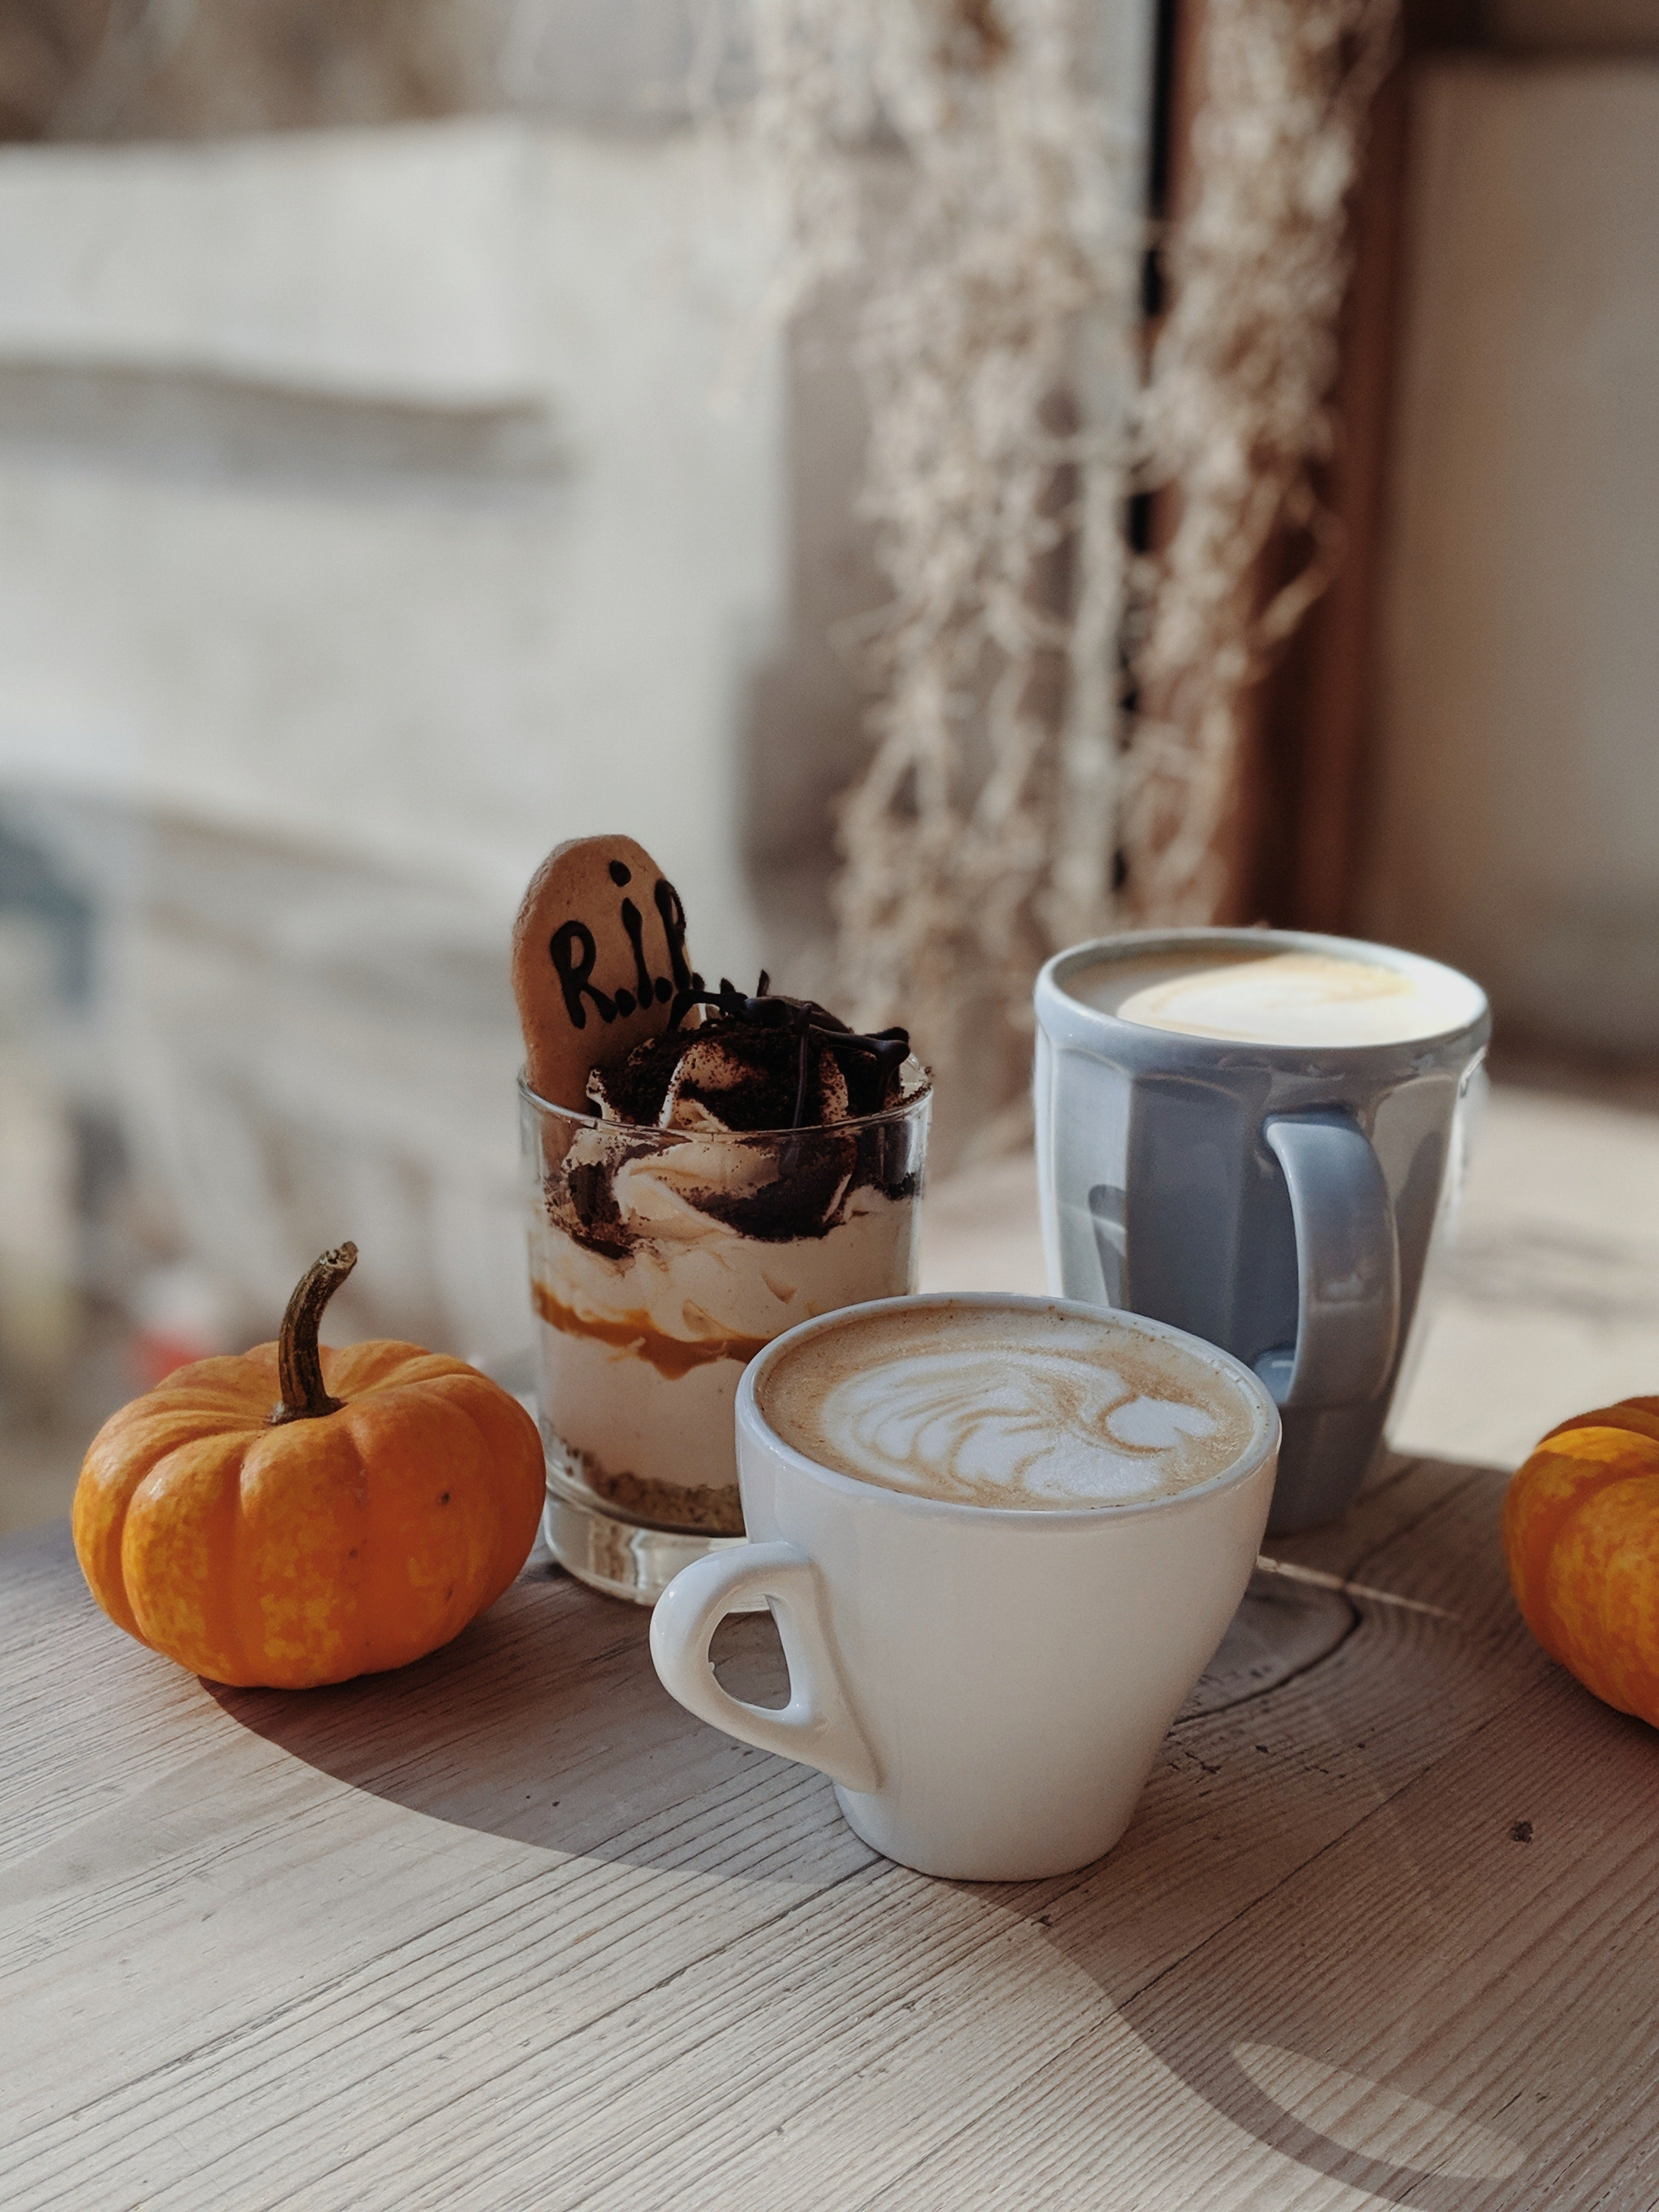 How to make pumpkin spice lattes (and more) at work